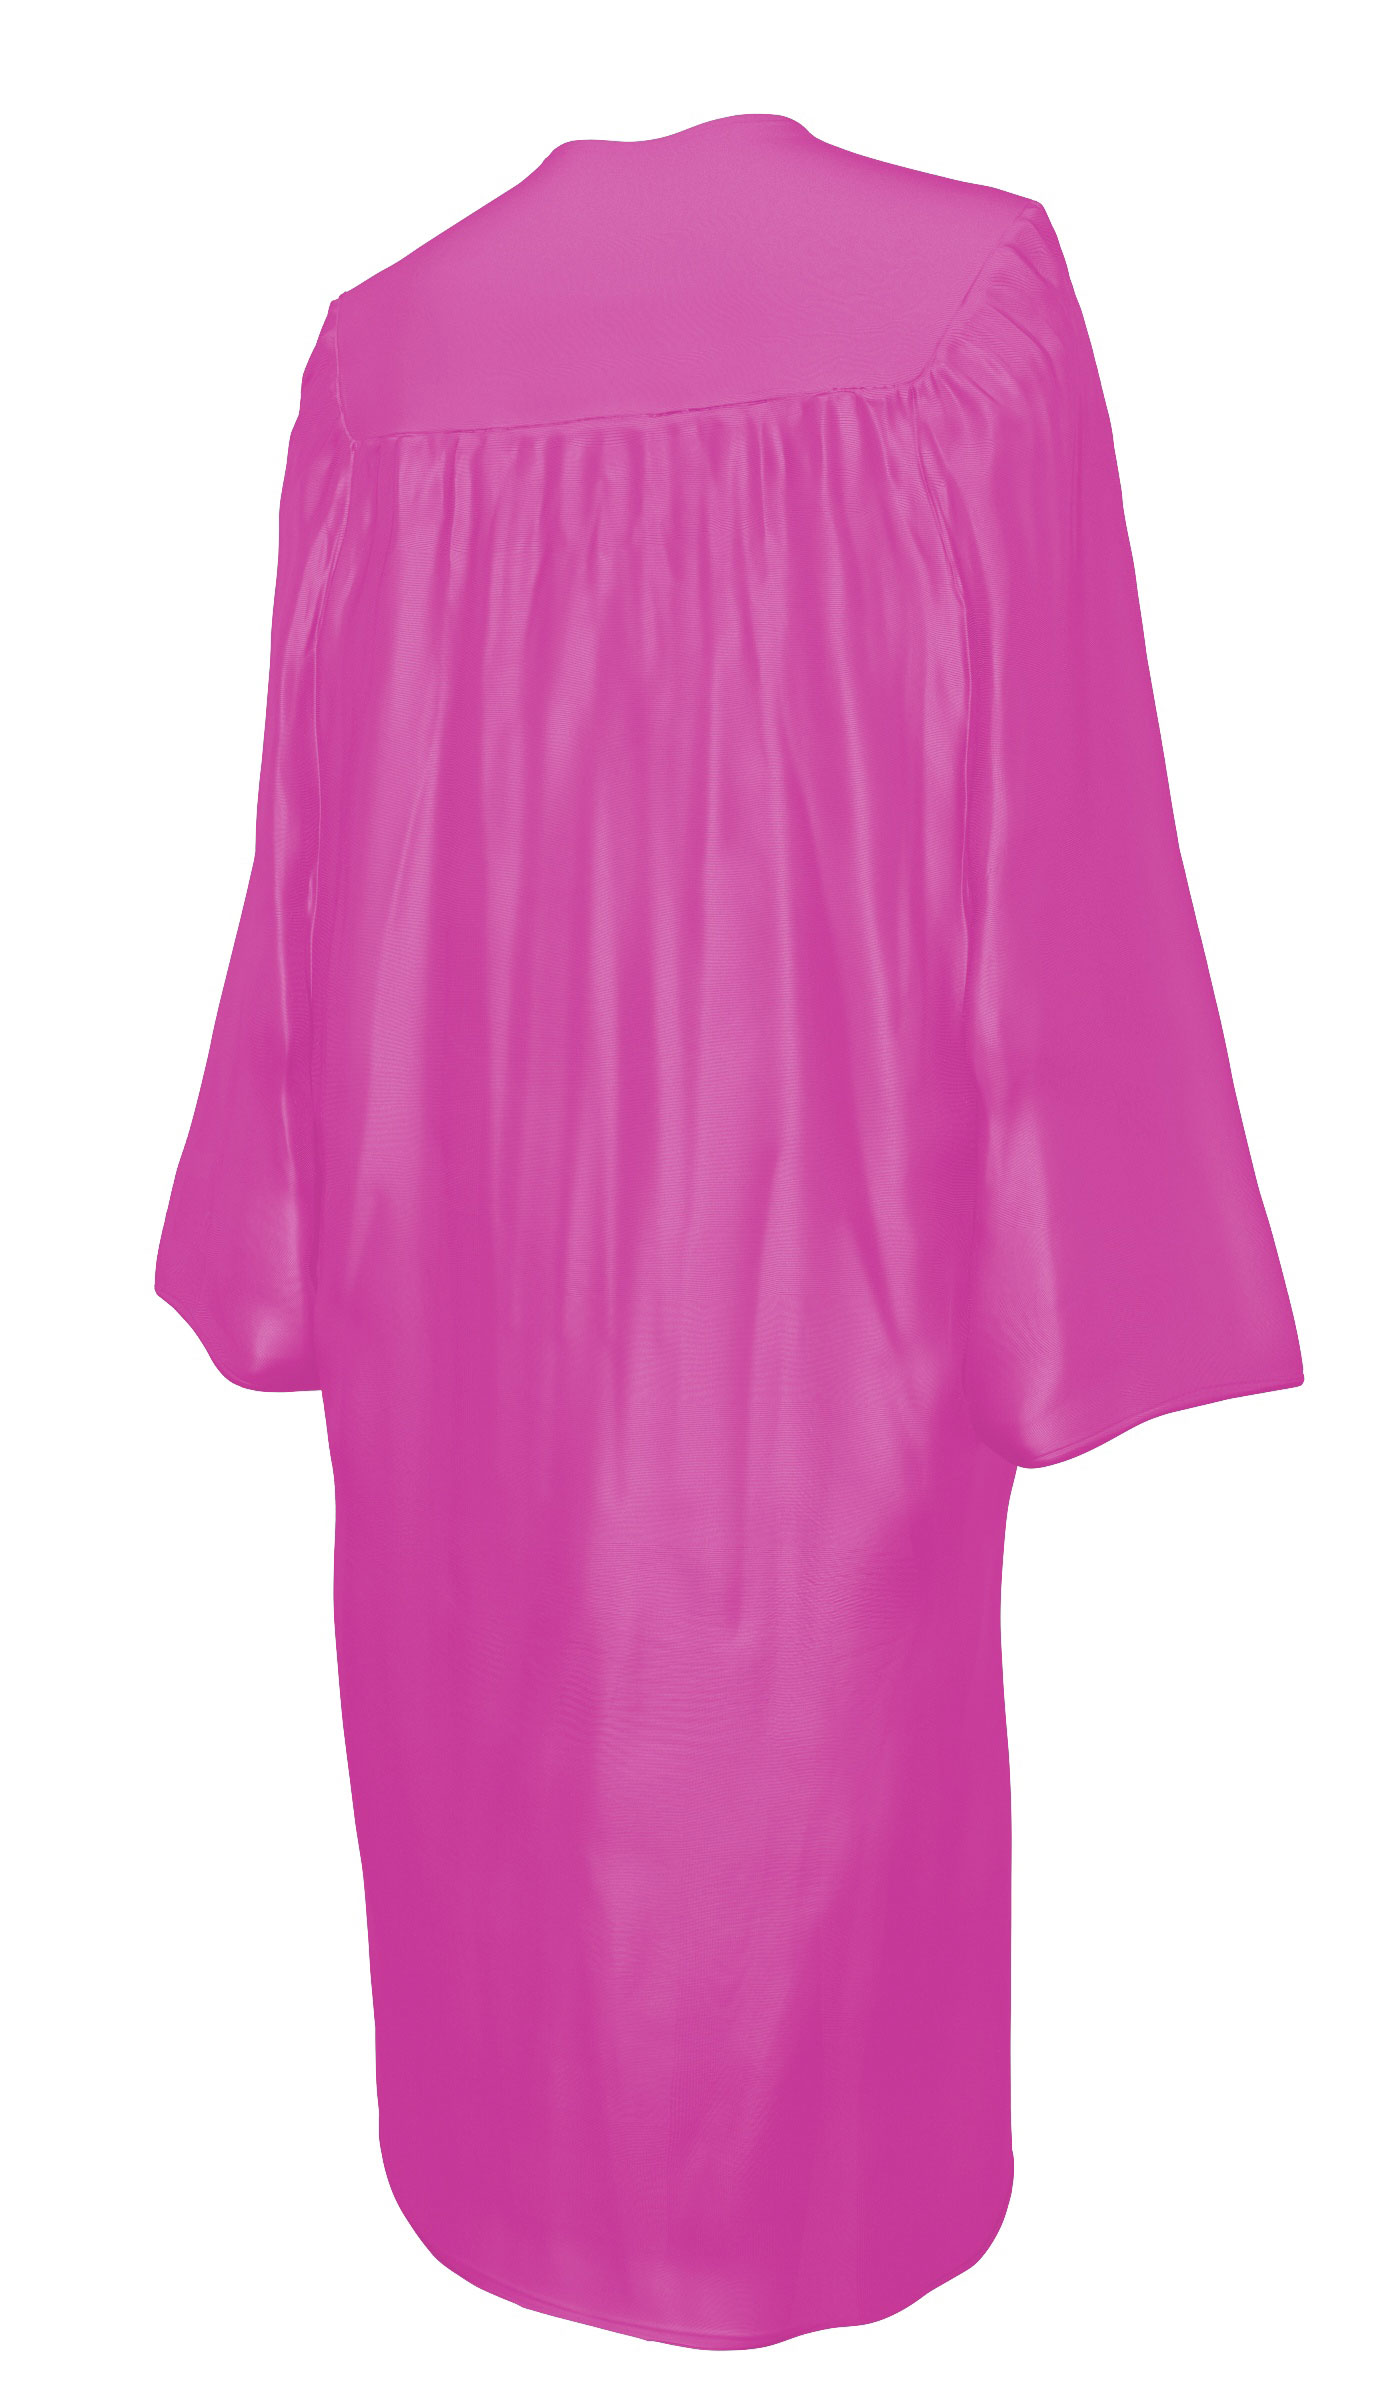 SHINY PINK CAP & GOWN BACHELOR GRADUATION SET-rs4251465601479